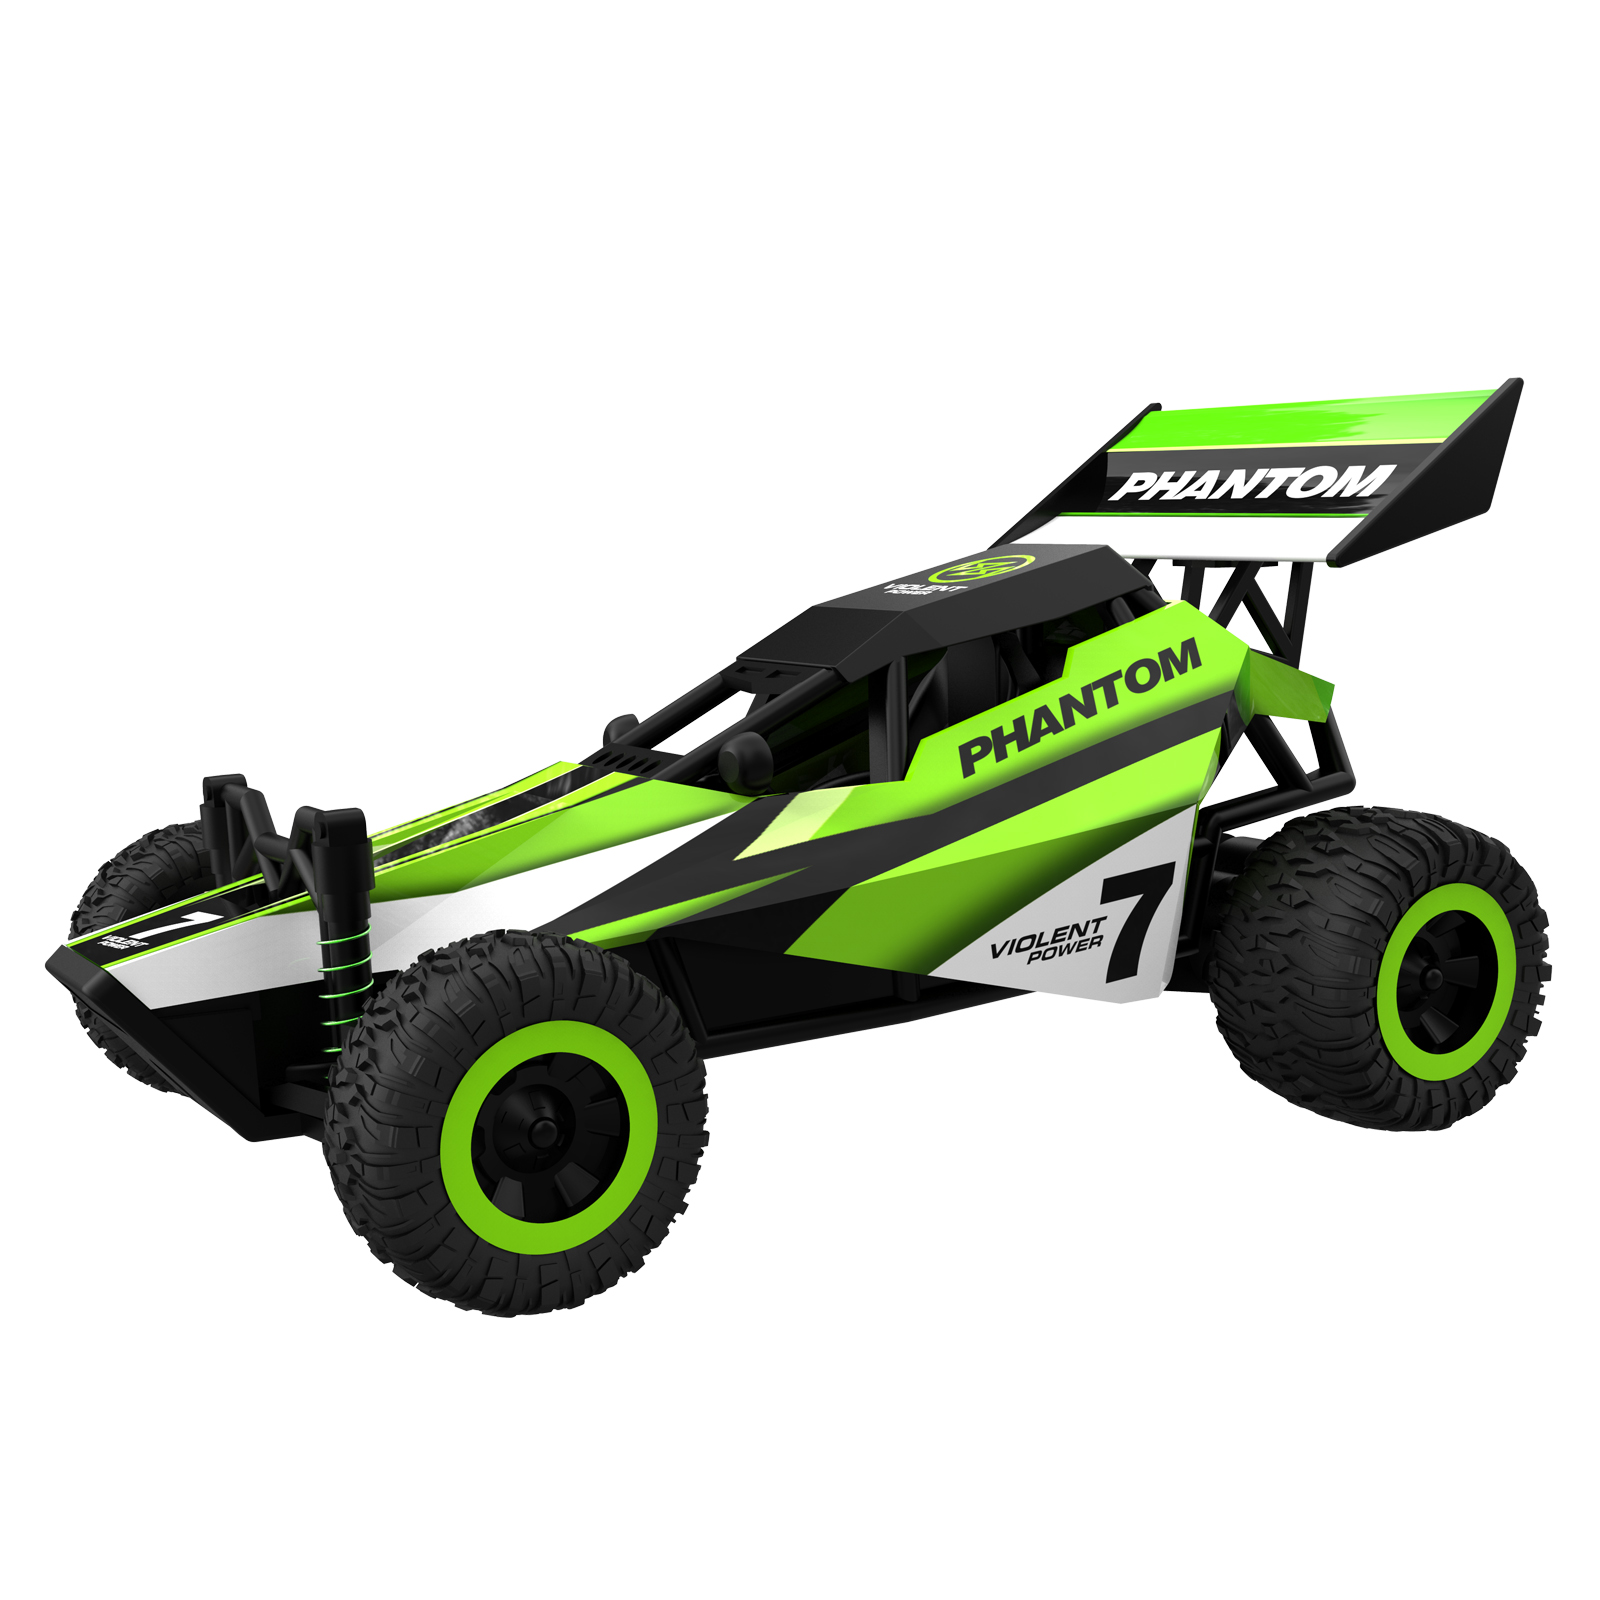 CRAZON 1 32 Scale 2.4Ghz R C Radio Control Racing Car 2WD Electric Phantom by ZhenCheng